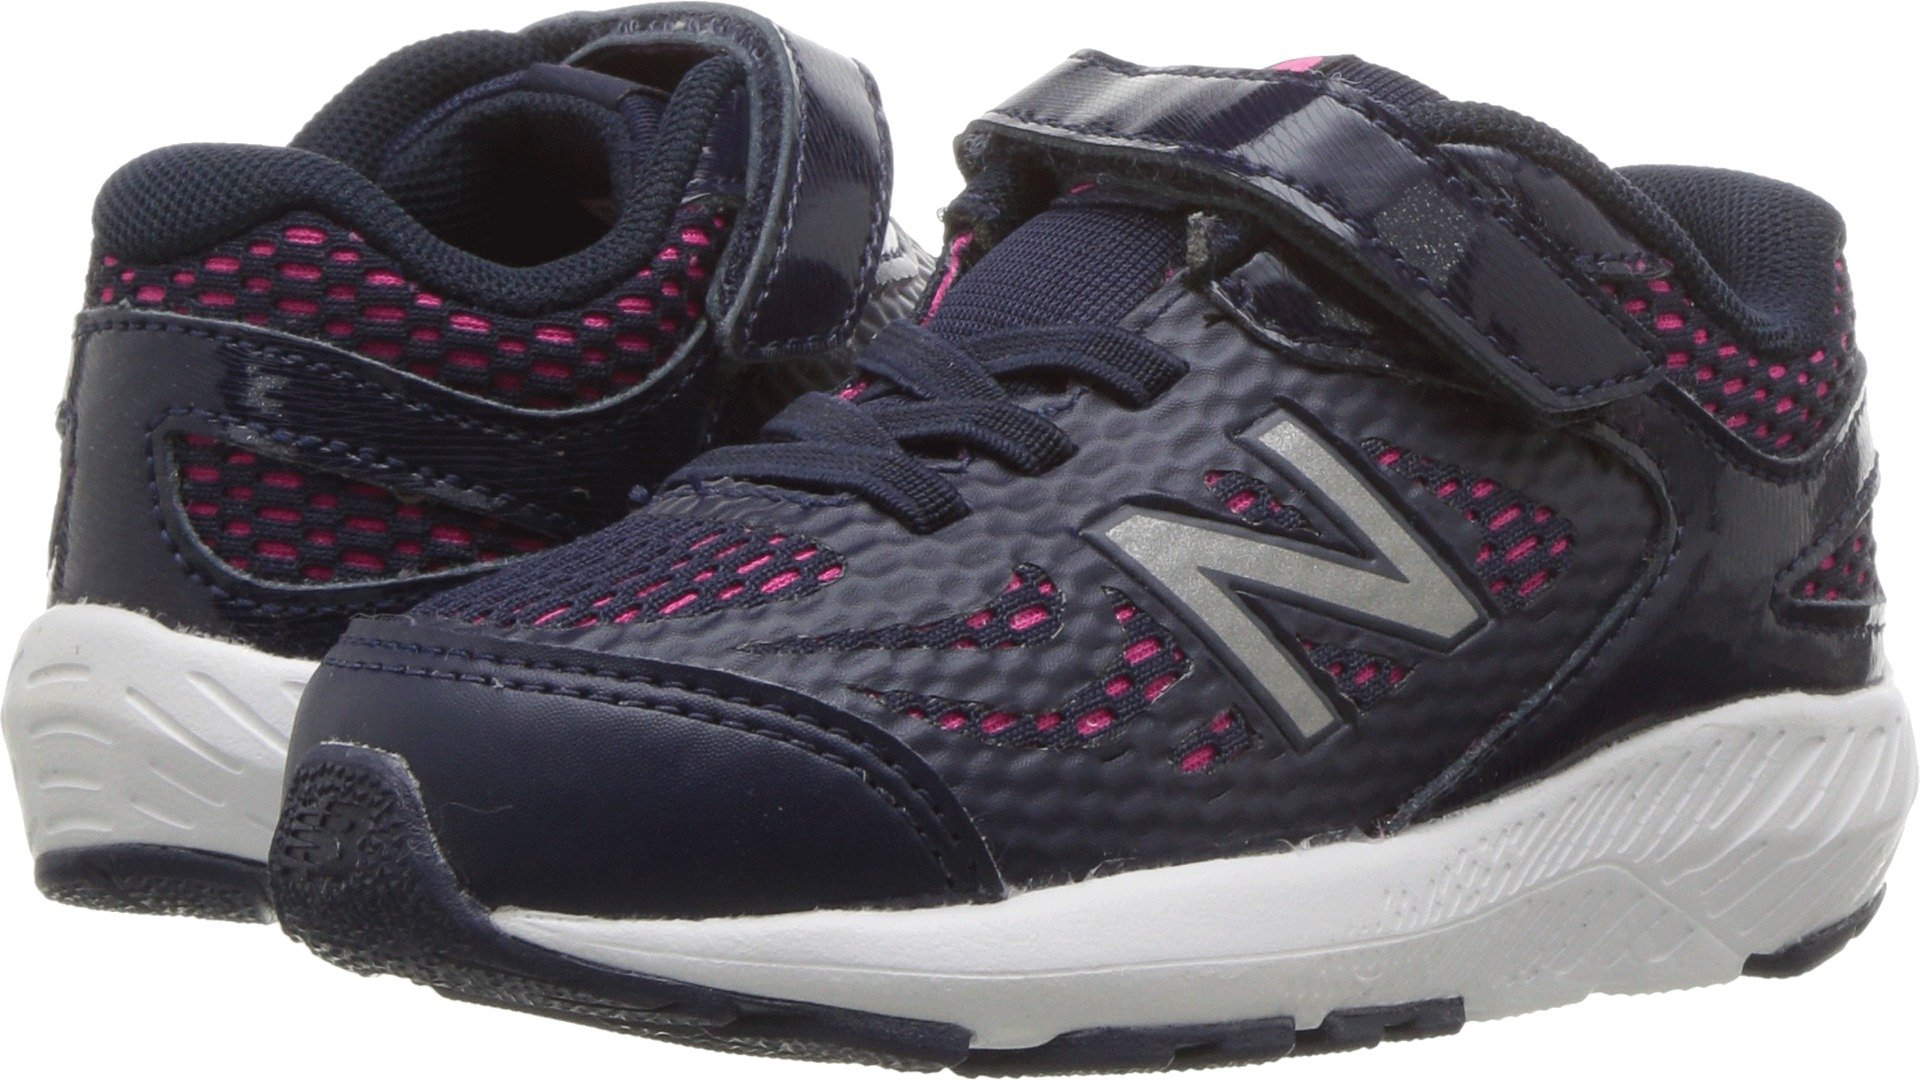 New Balance Girls' 519v1 Hook and Loop Running Shoe, Pigment/Pink Glo, 8 W US Toddler